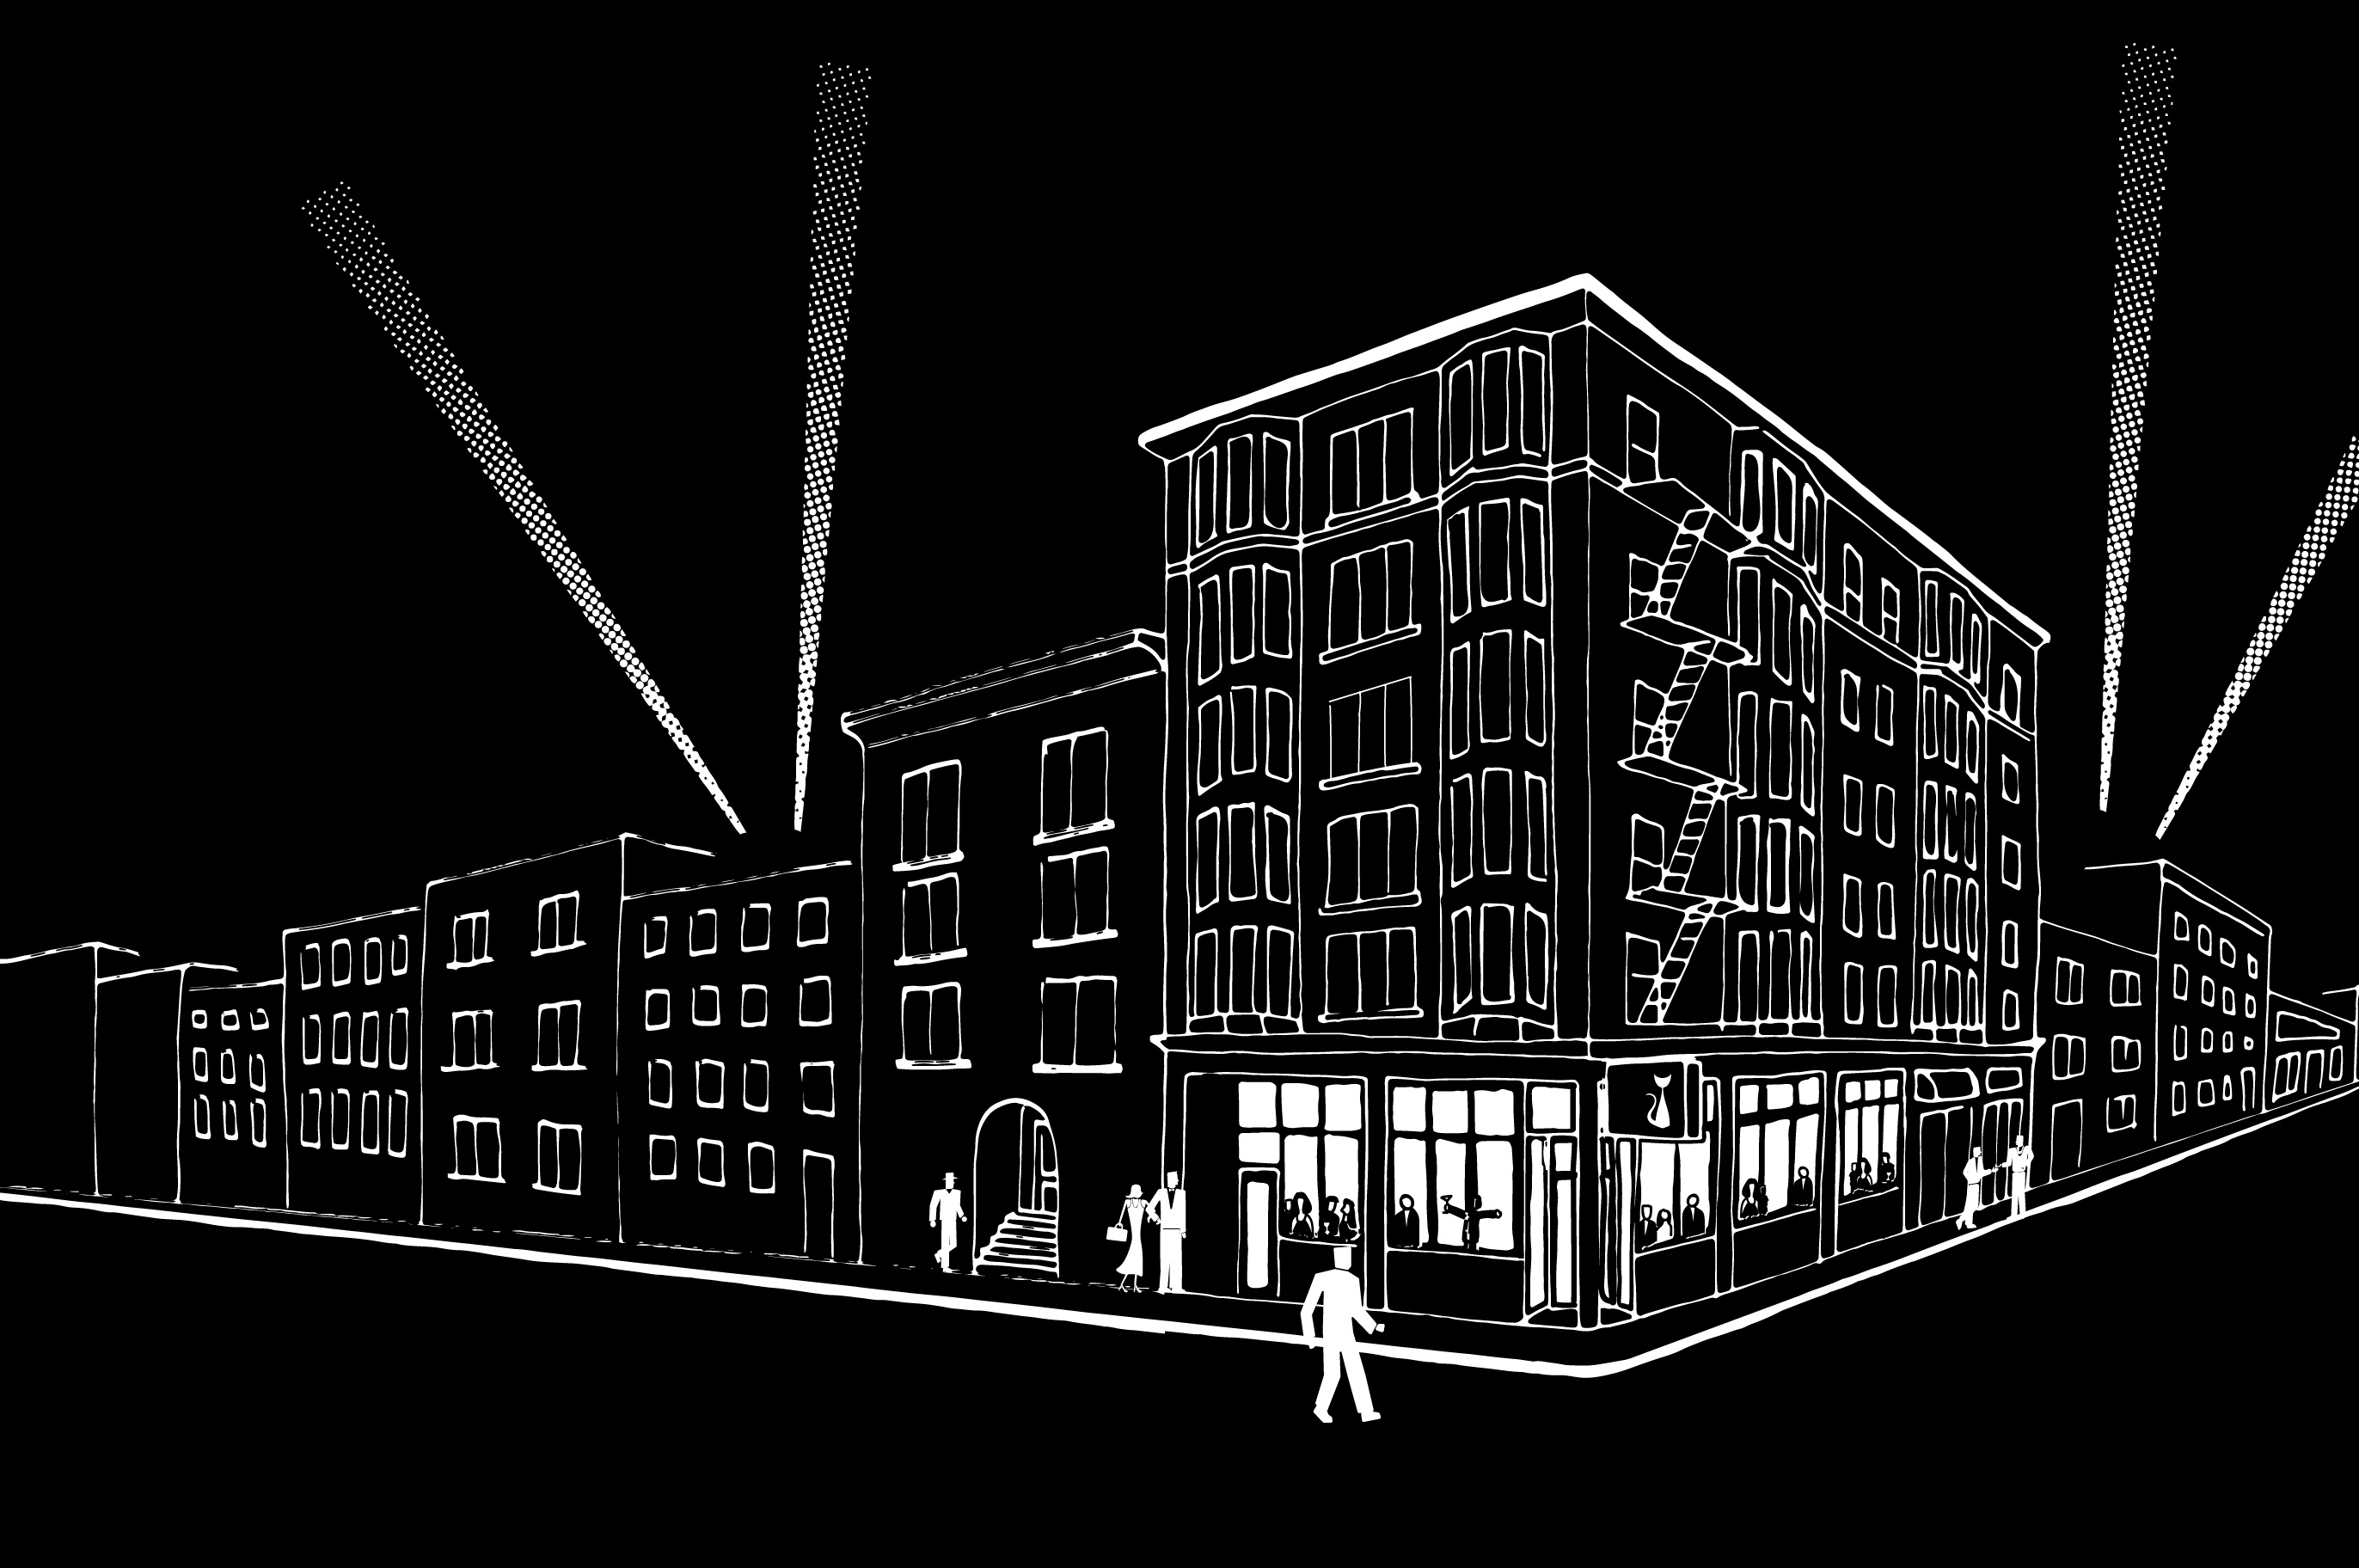 A rendering of the space